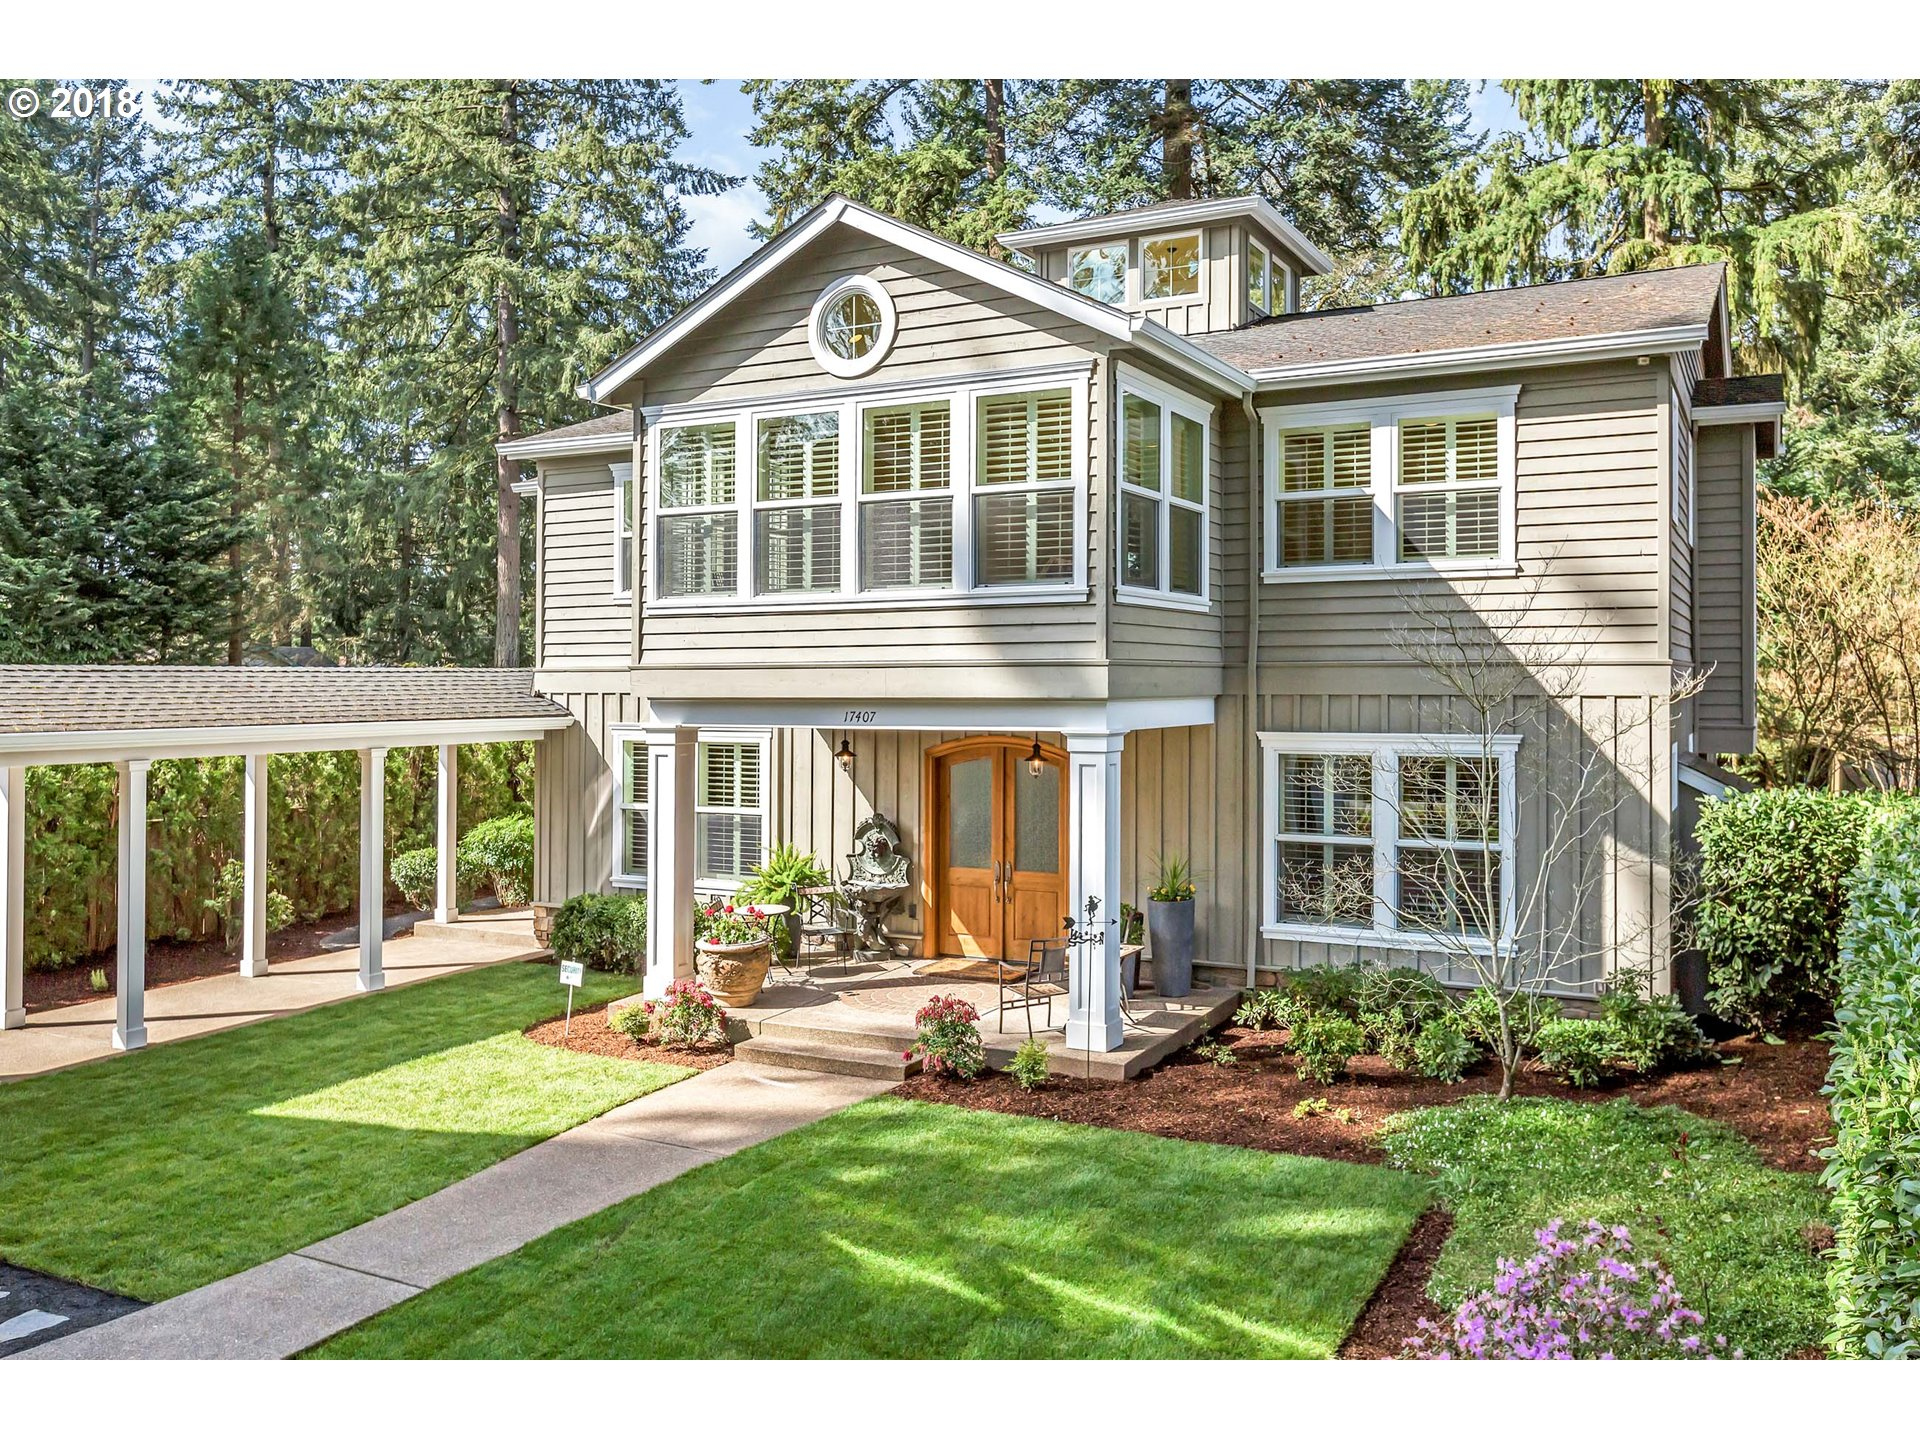 17407 REDFERN AVE, Lake Oswego, OR 97035